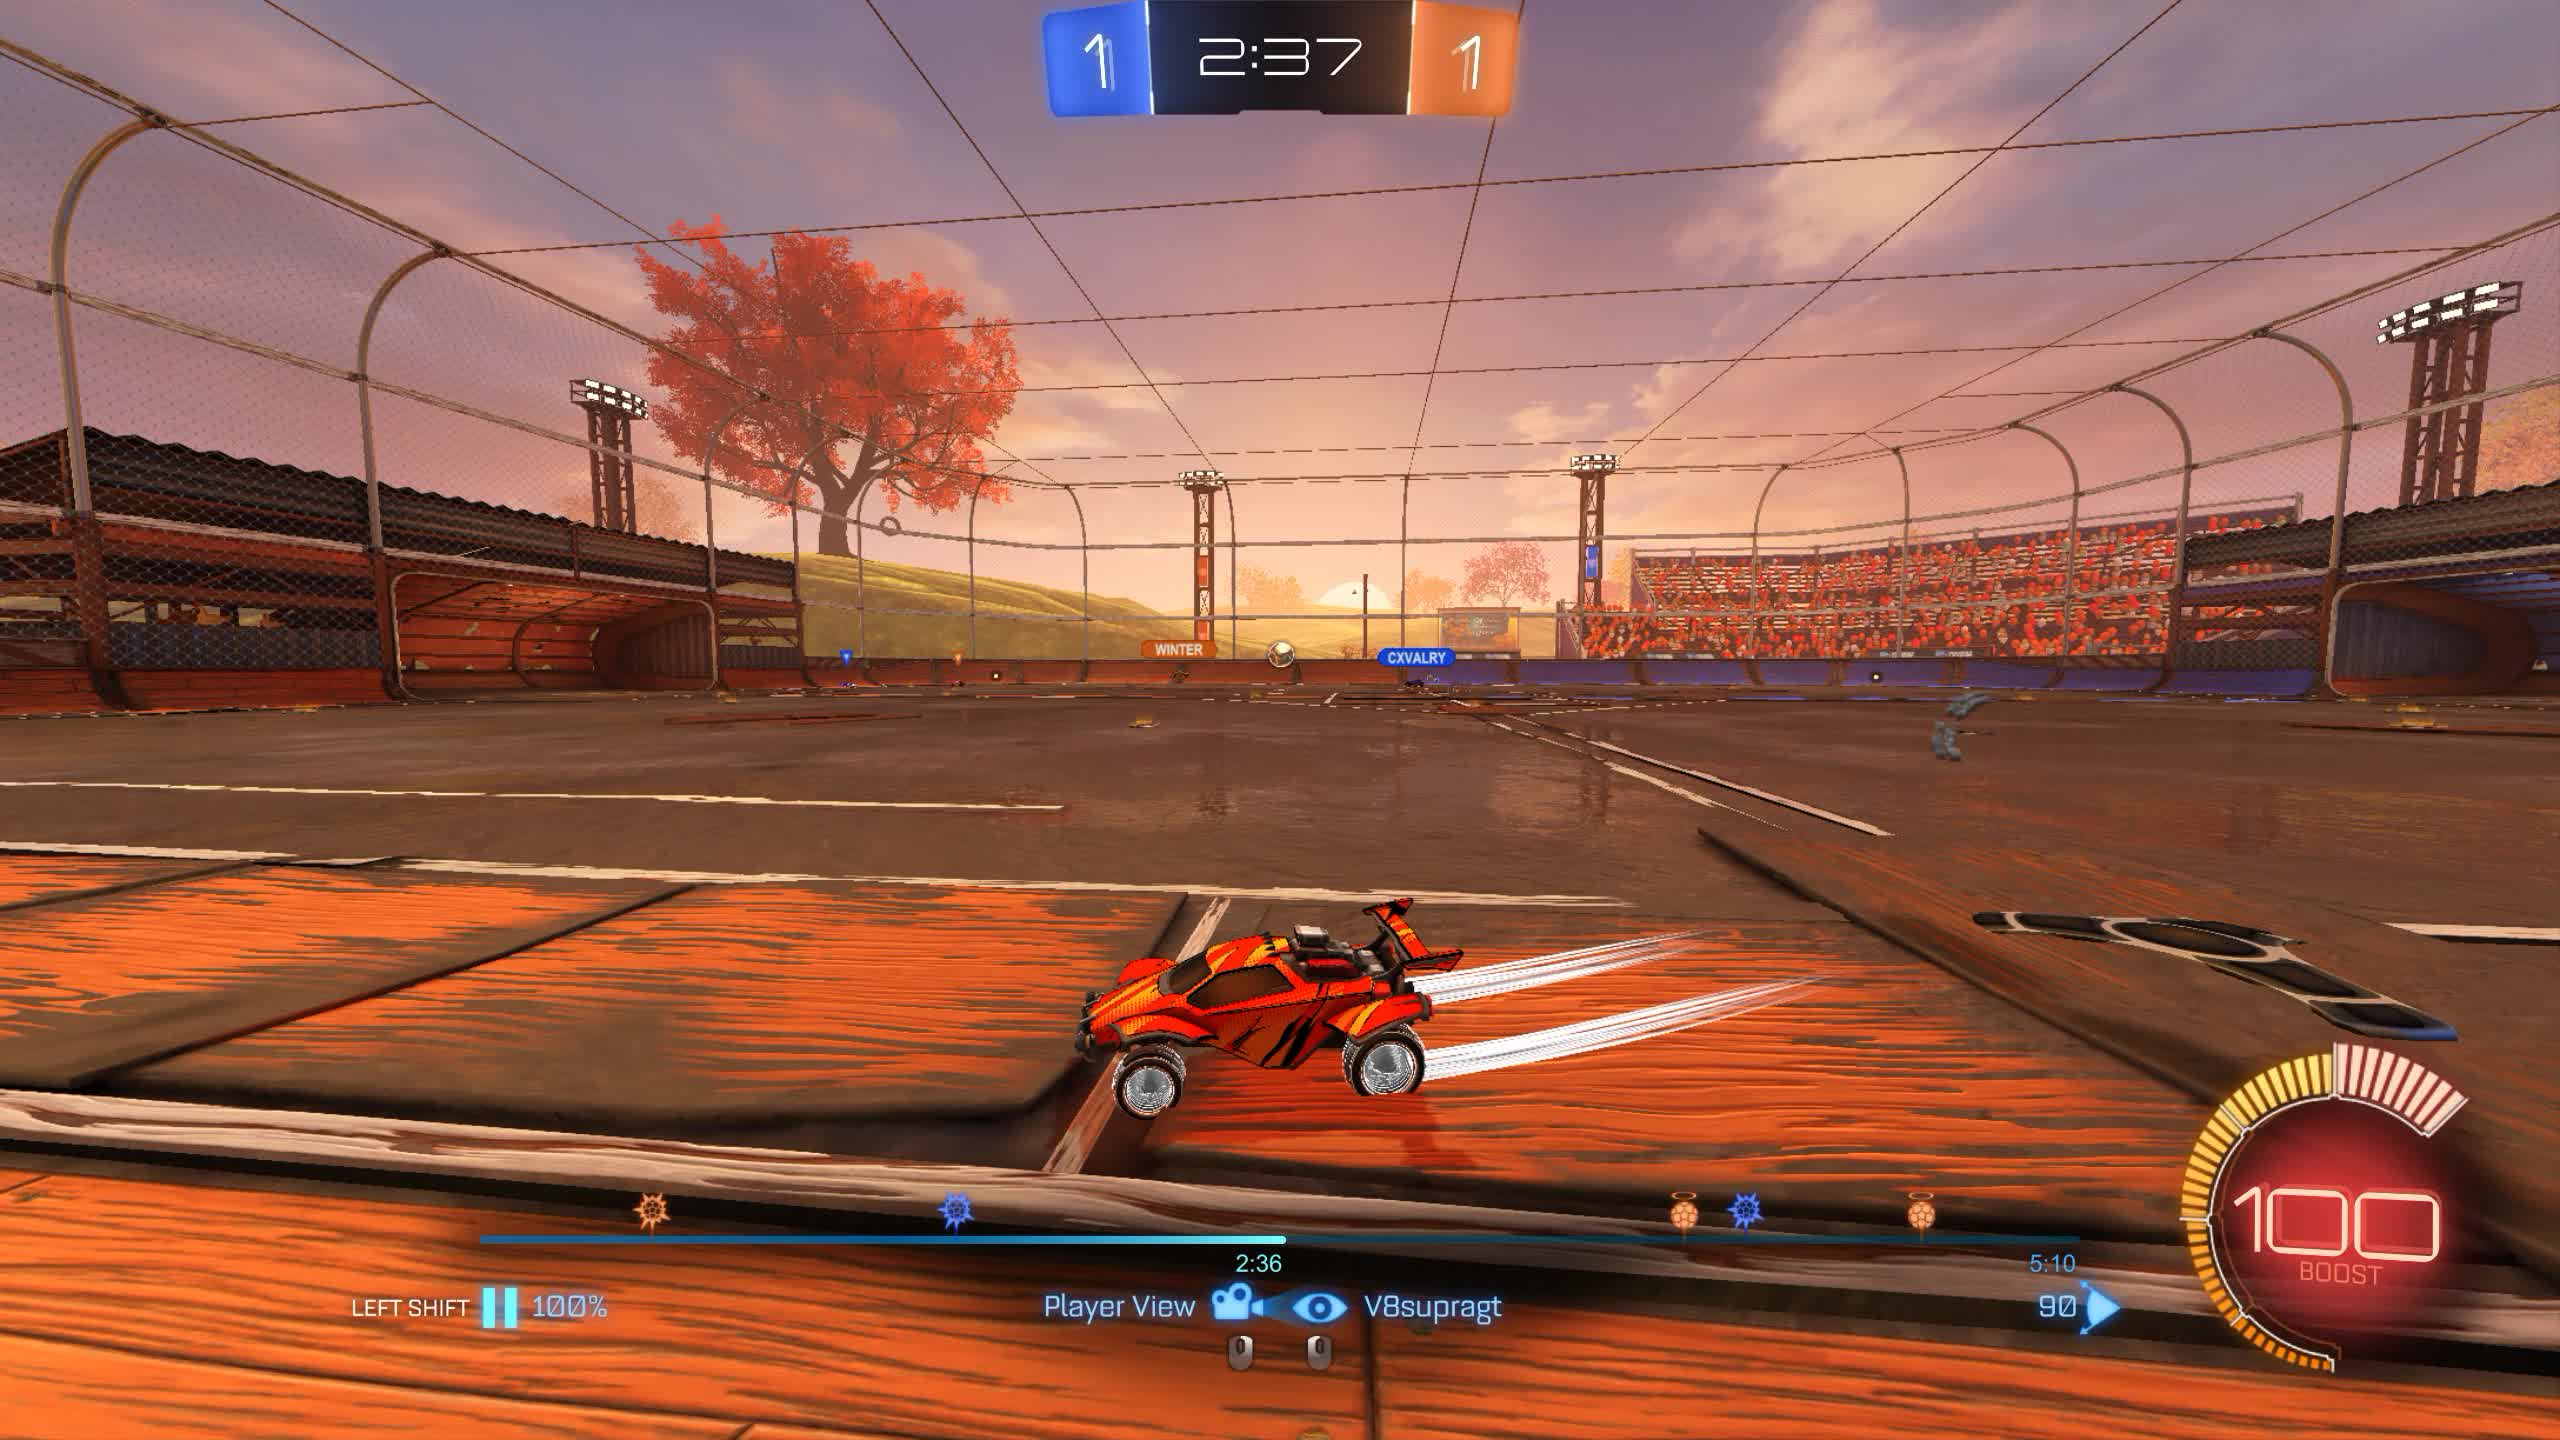 RocketLeague, Rocket League GIFs